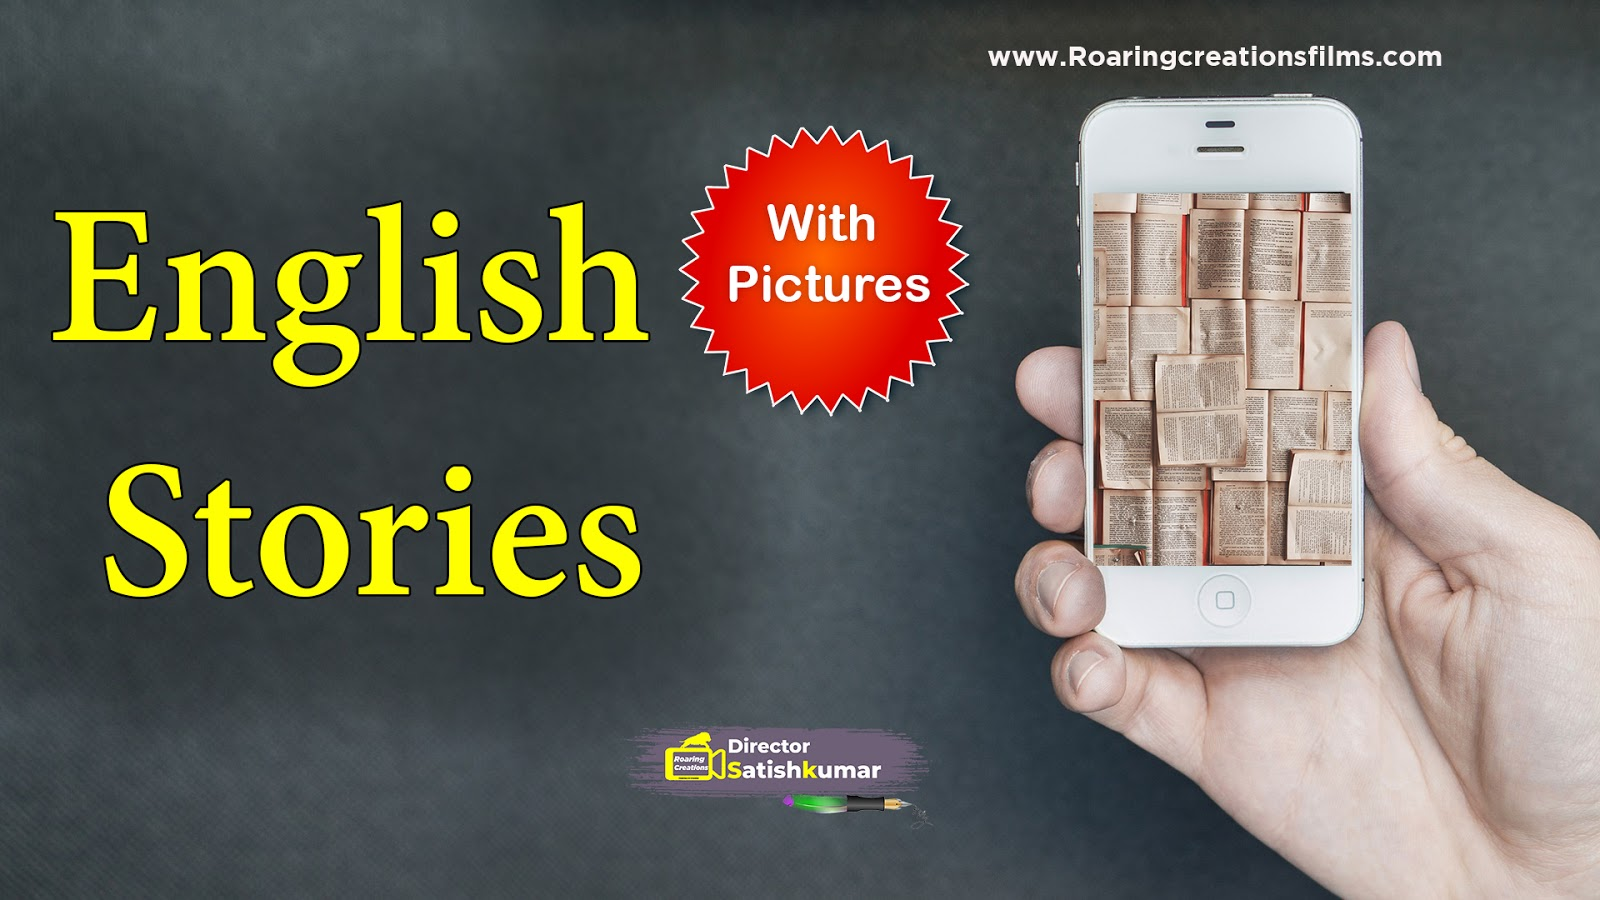 English Stories - Stories in English